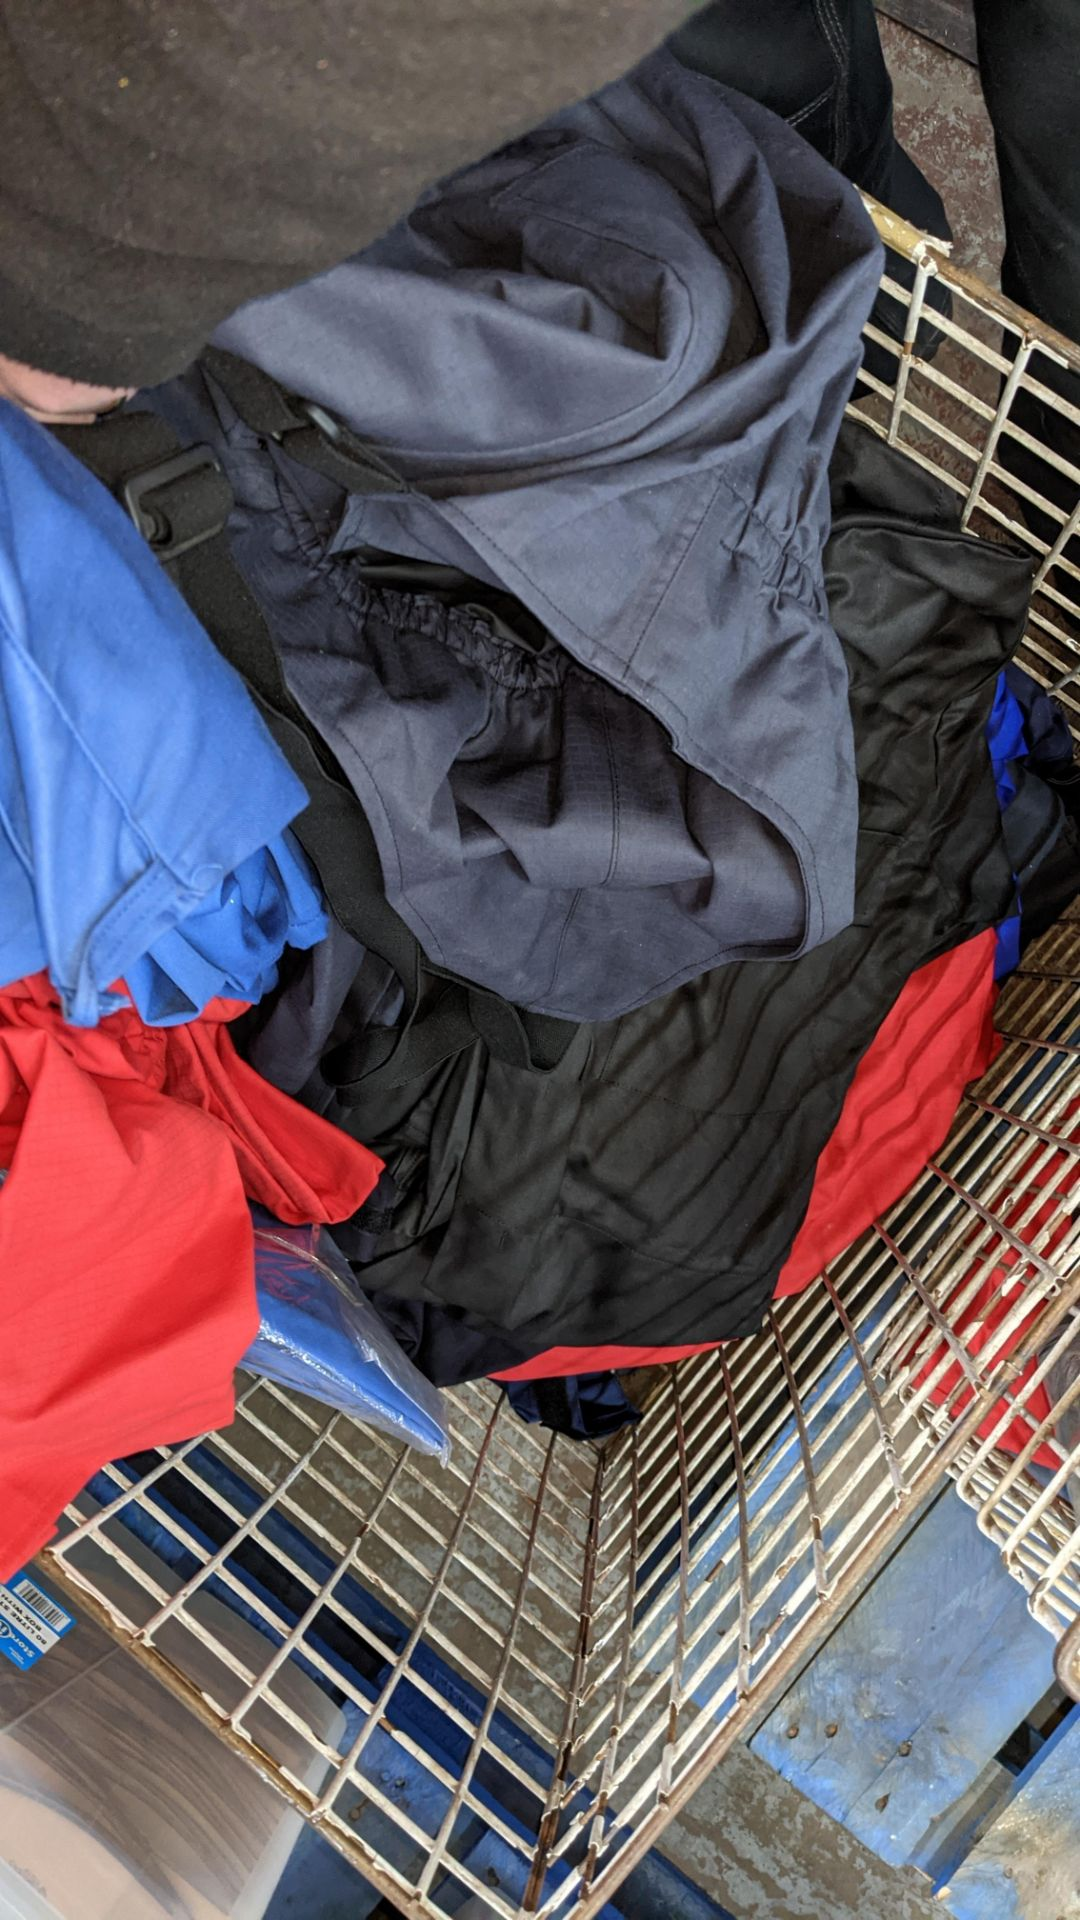 The contents of a cage of assorted work clothing. NB cage excluded - Image 8 of 8